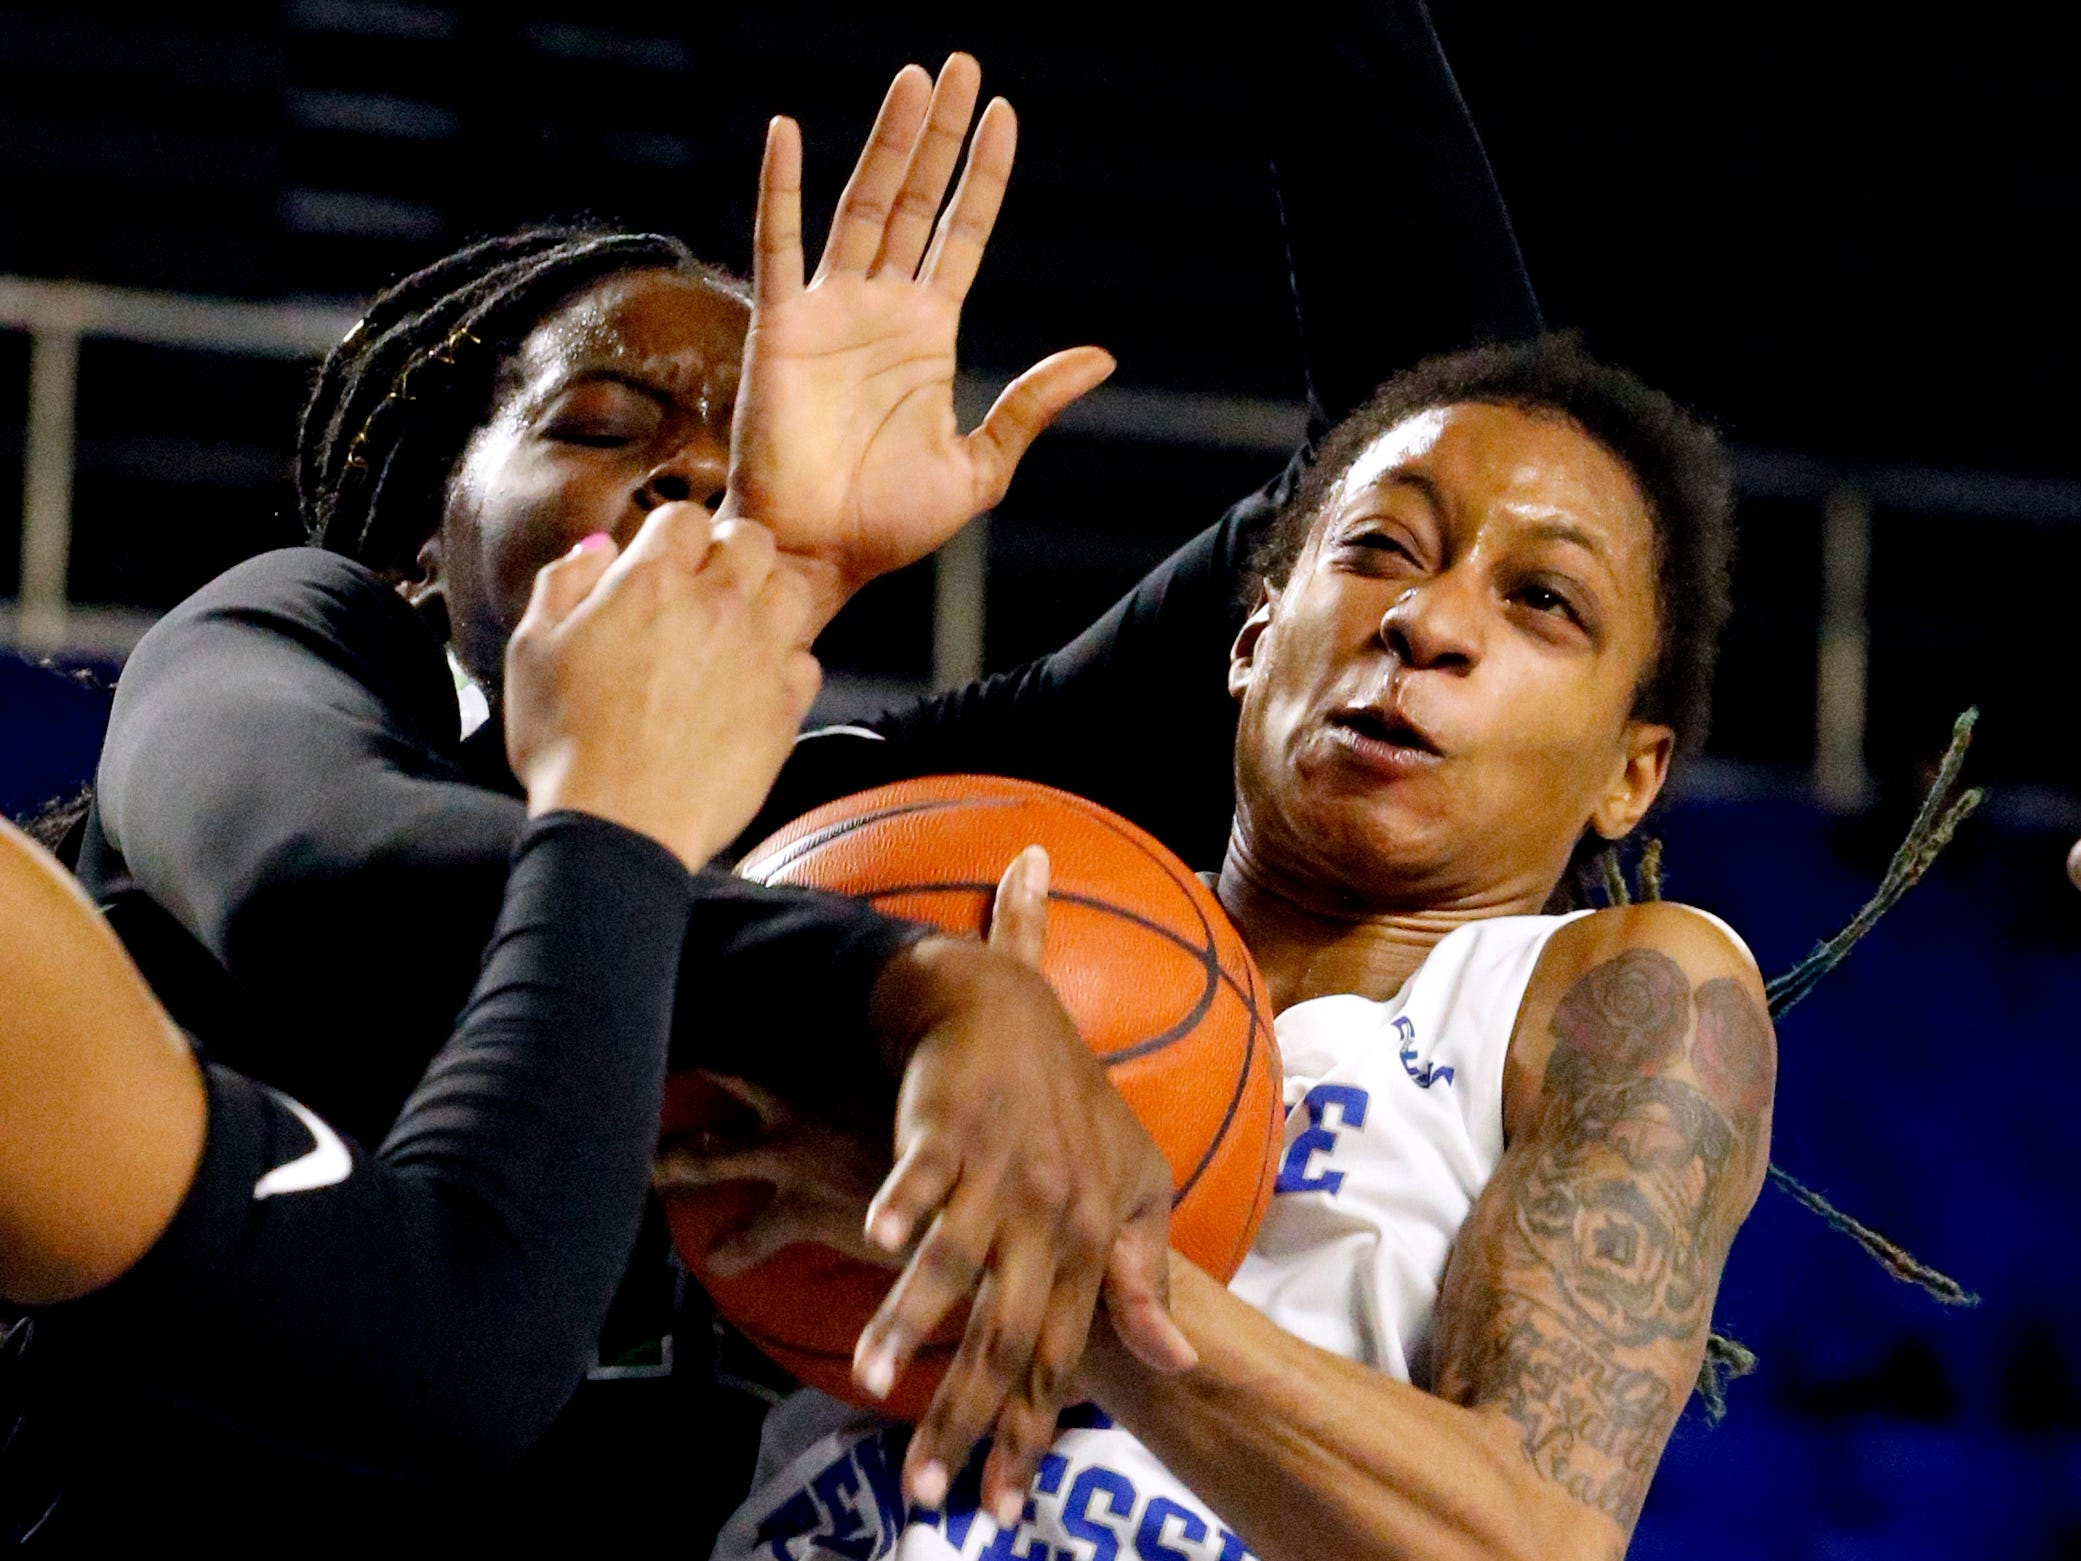 MTSU's guard A'Queen Hayes (1) and North Texas' forward/center Anisha George (42) fight for position of the ball on Saturday Jan. 26, 2019.